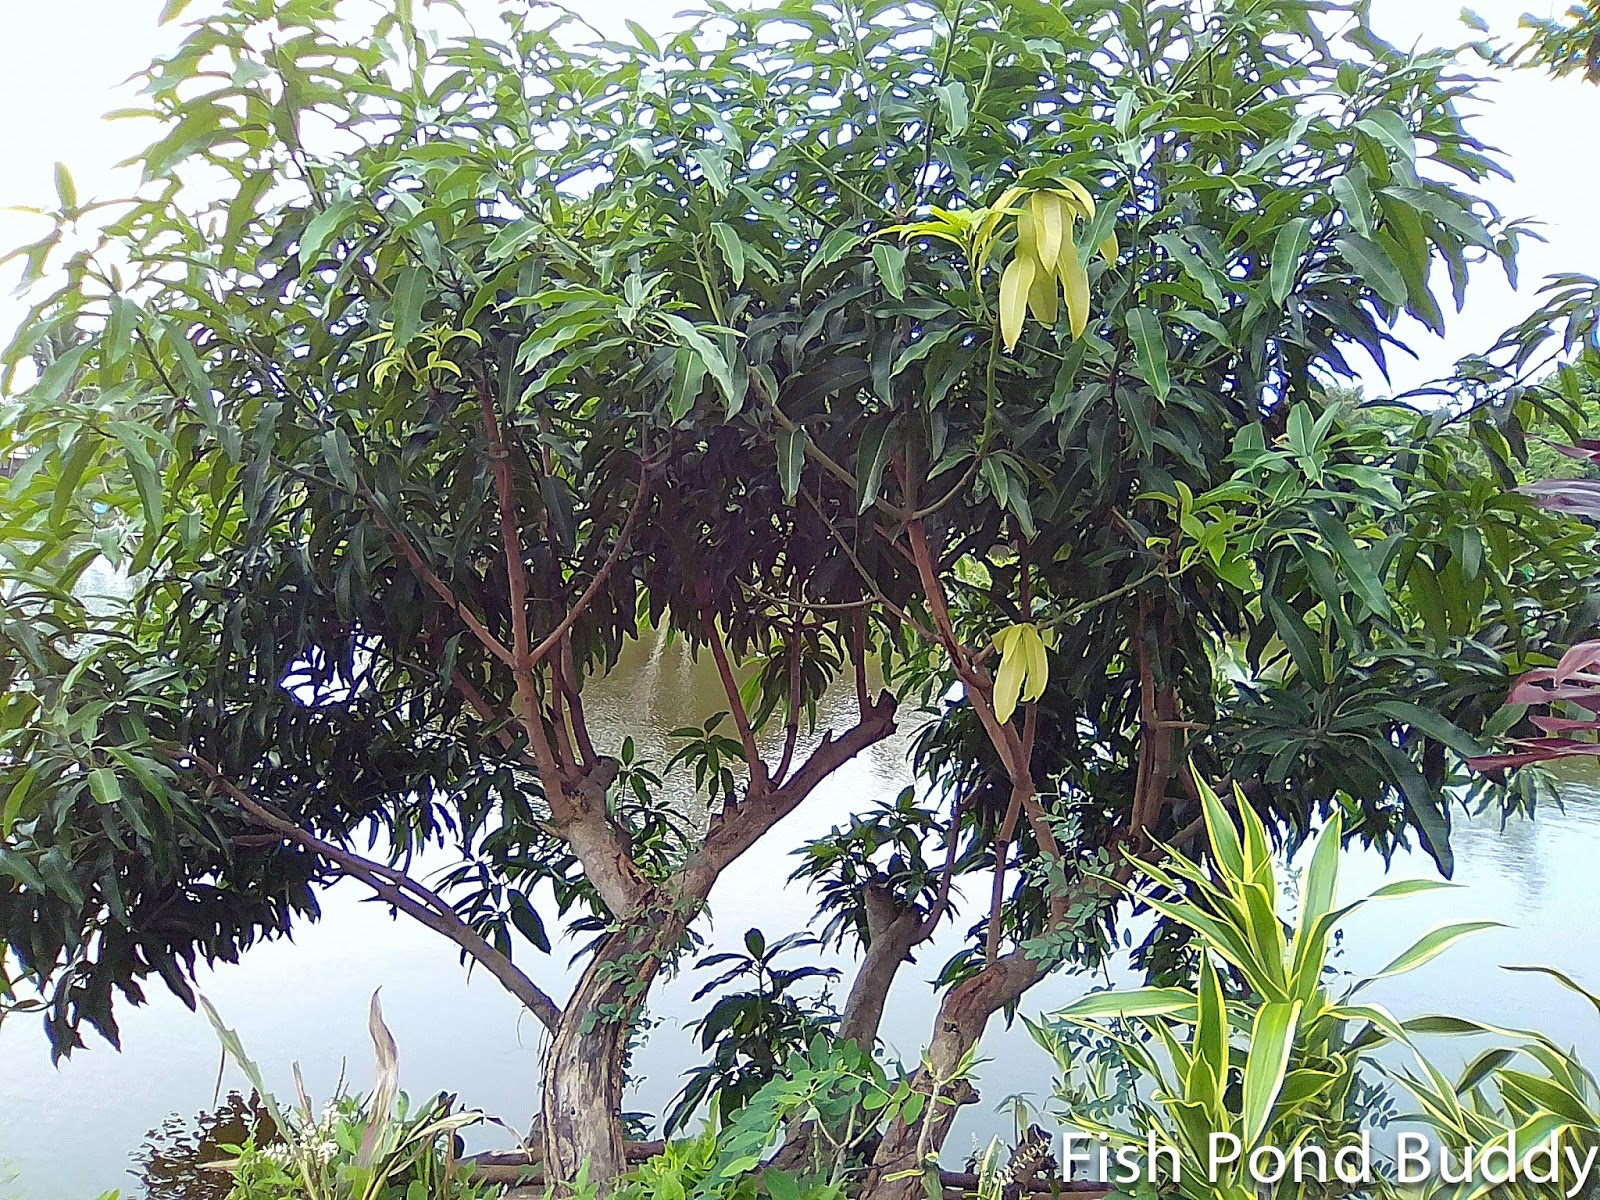 Fish pond buddy common medicinal plants fruits trees in for Fish branch tree farm